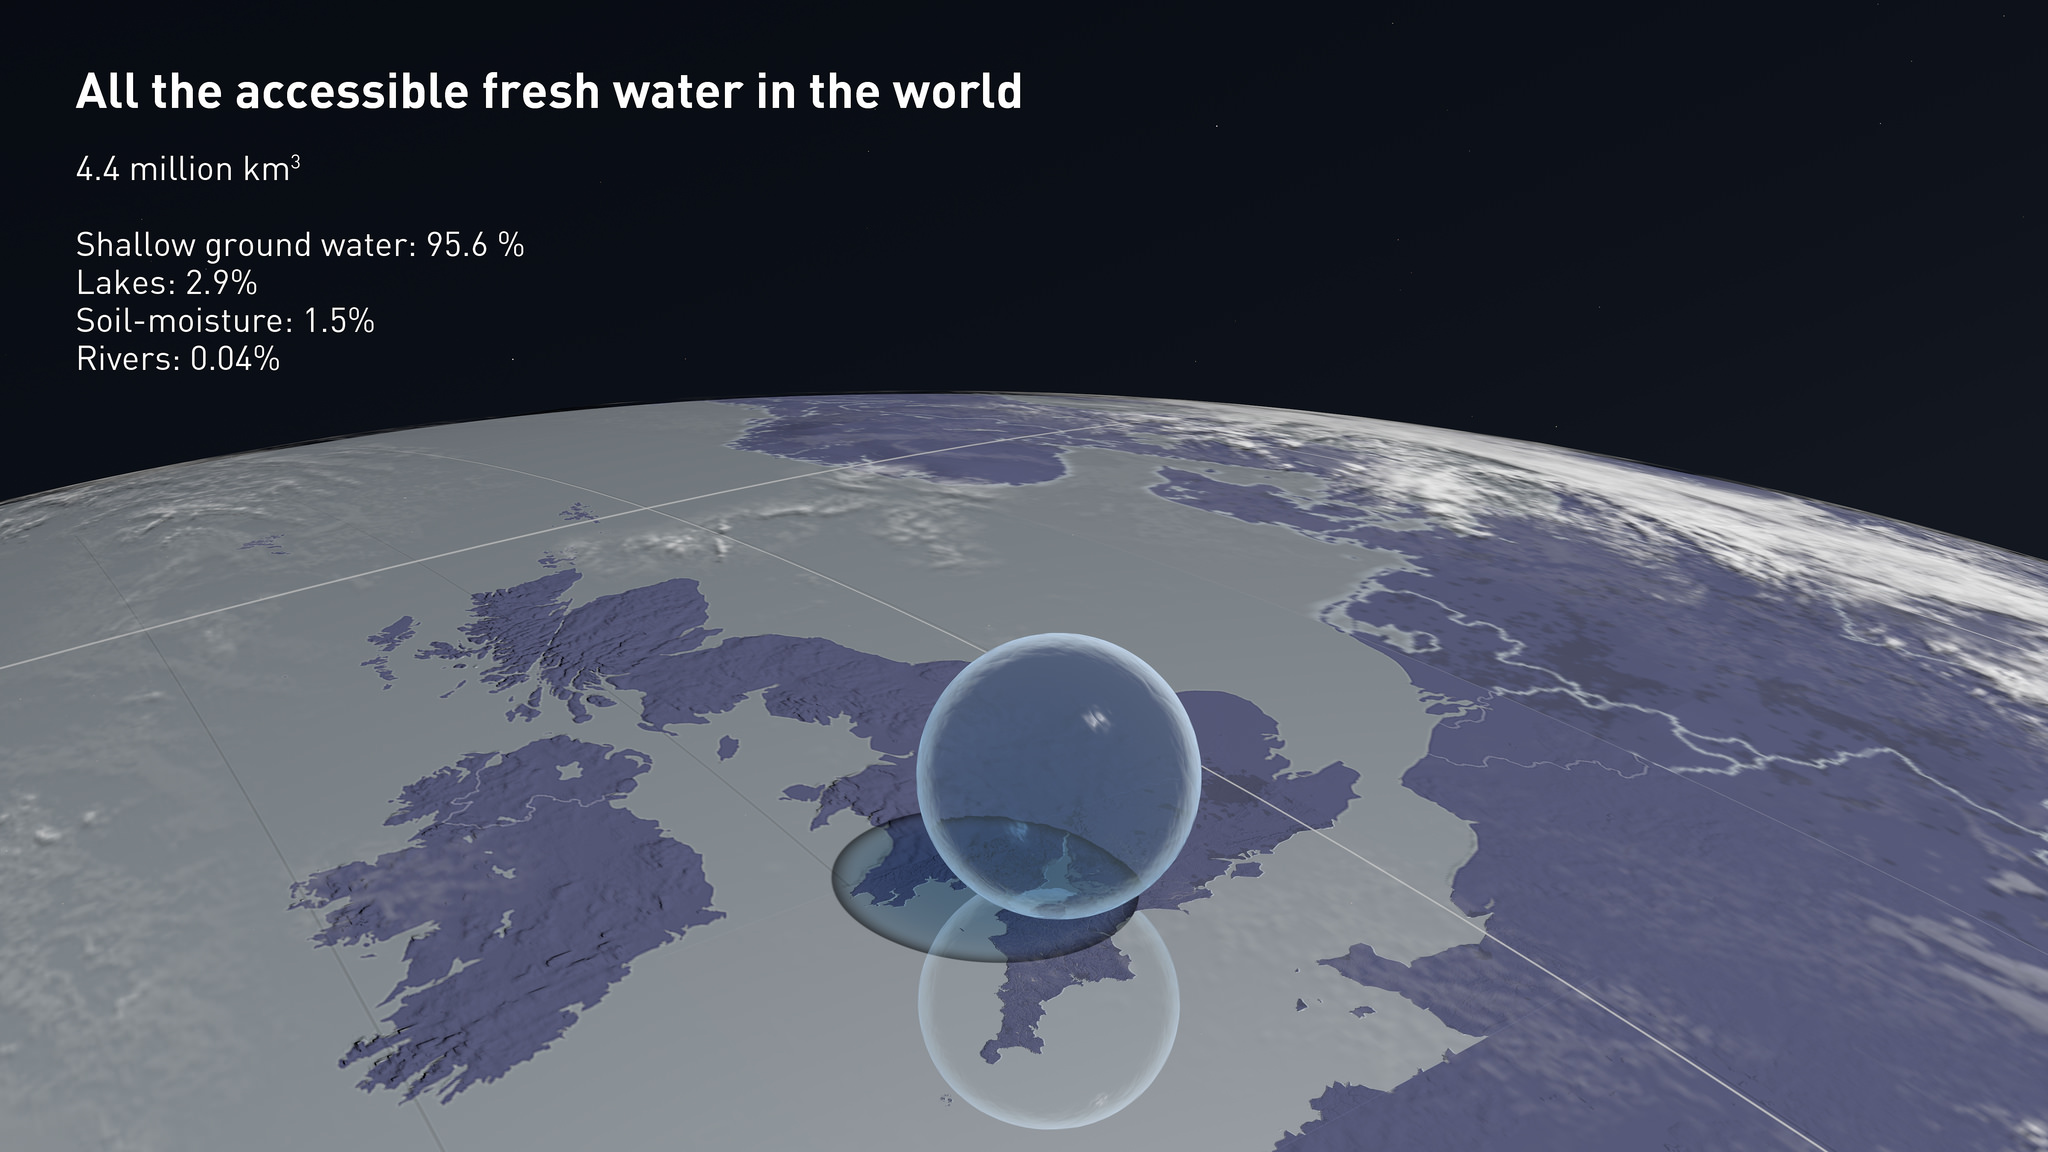 All the accessible freshwater in the world.jpg